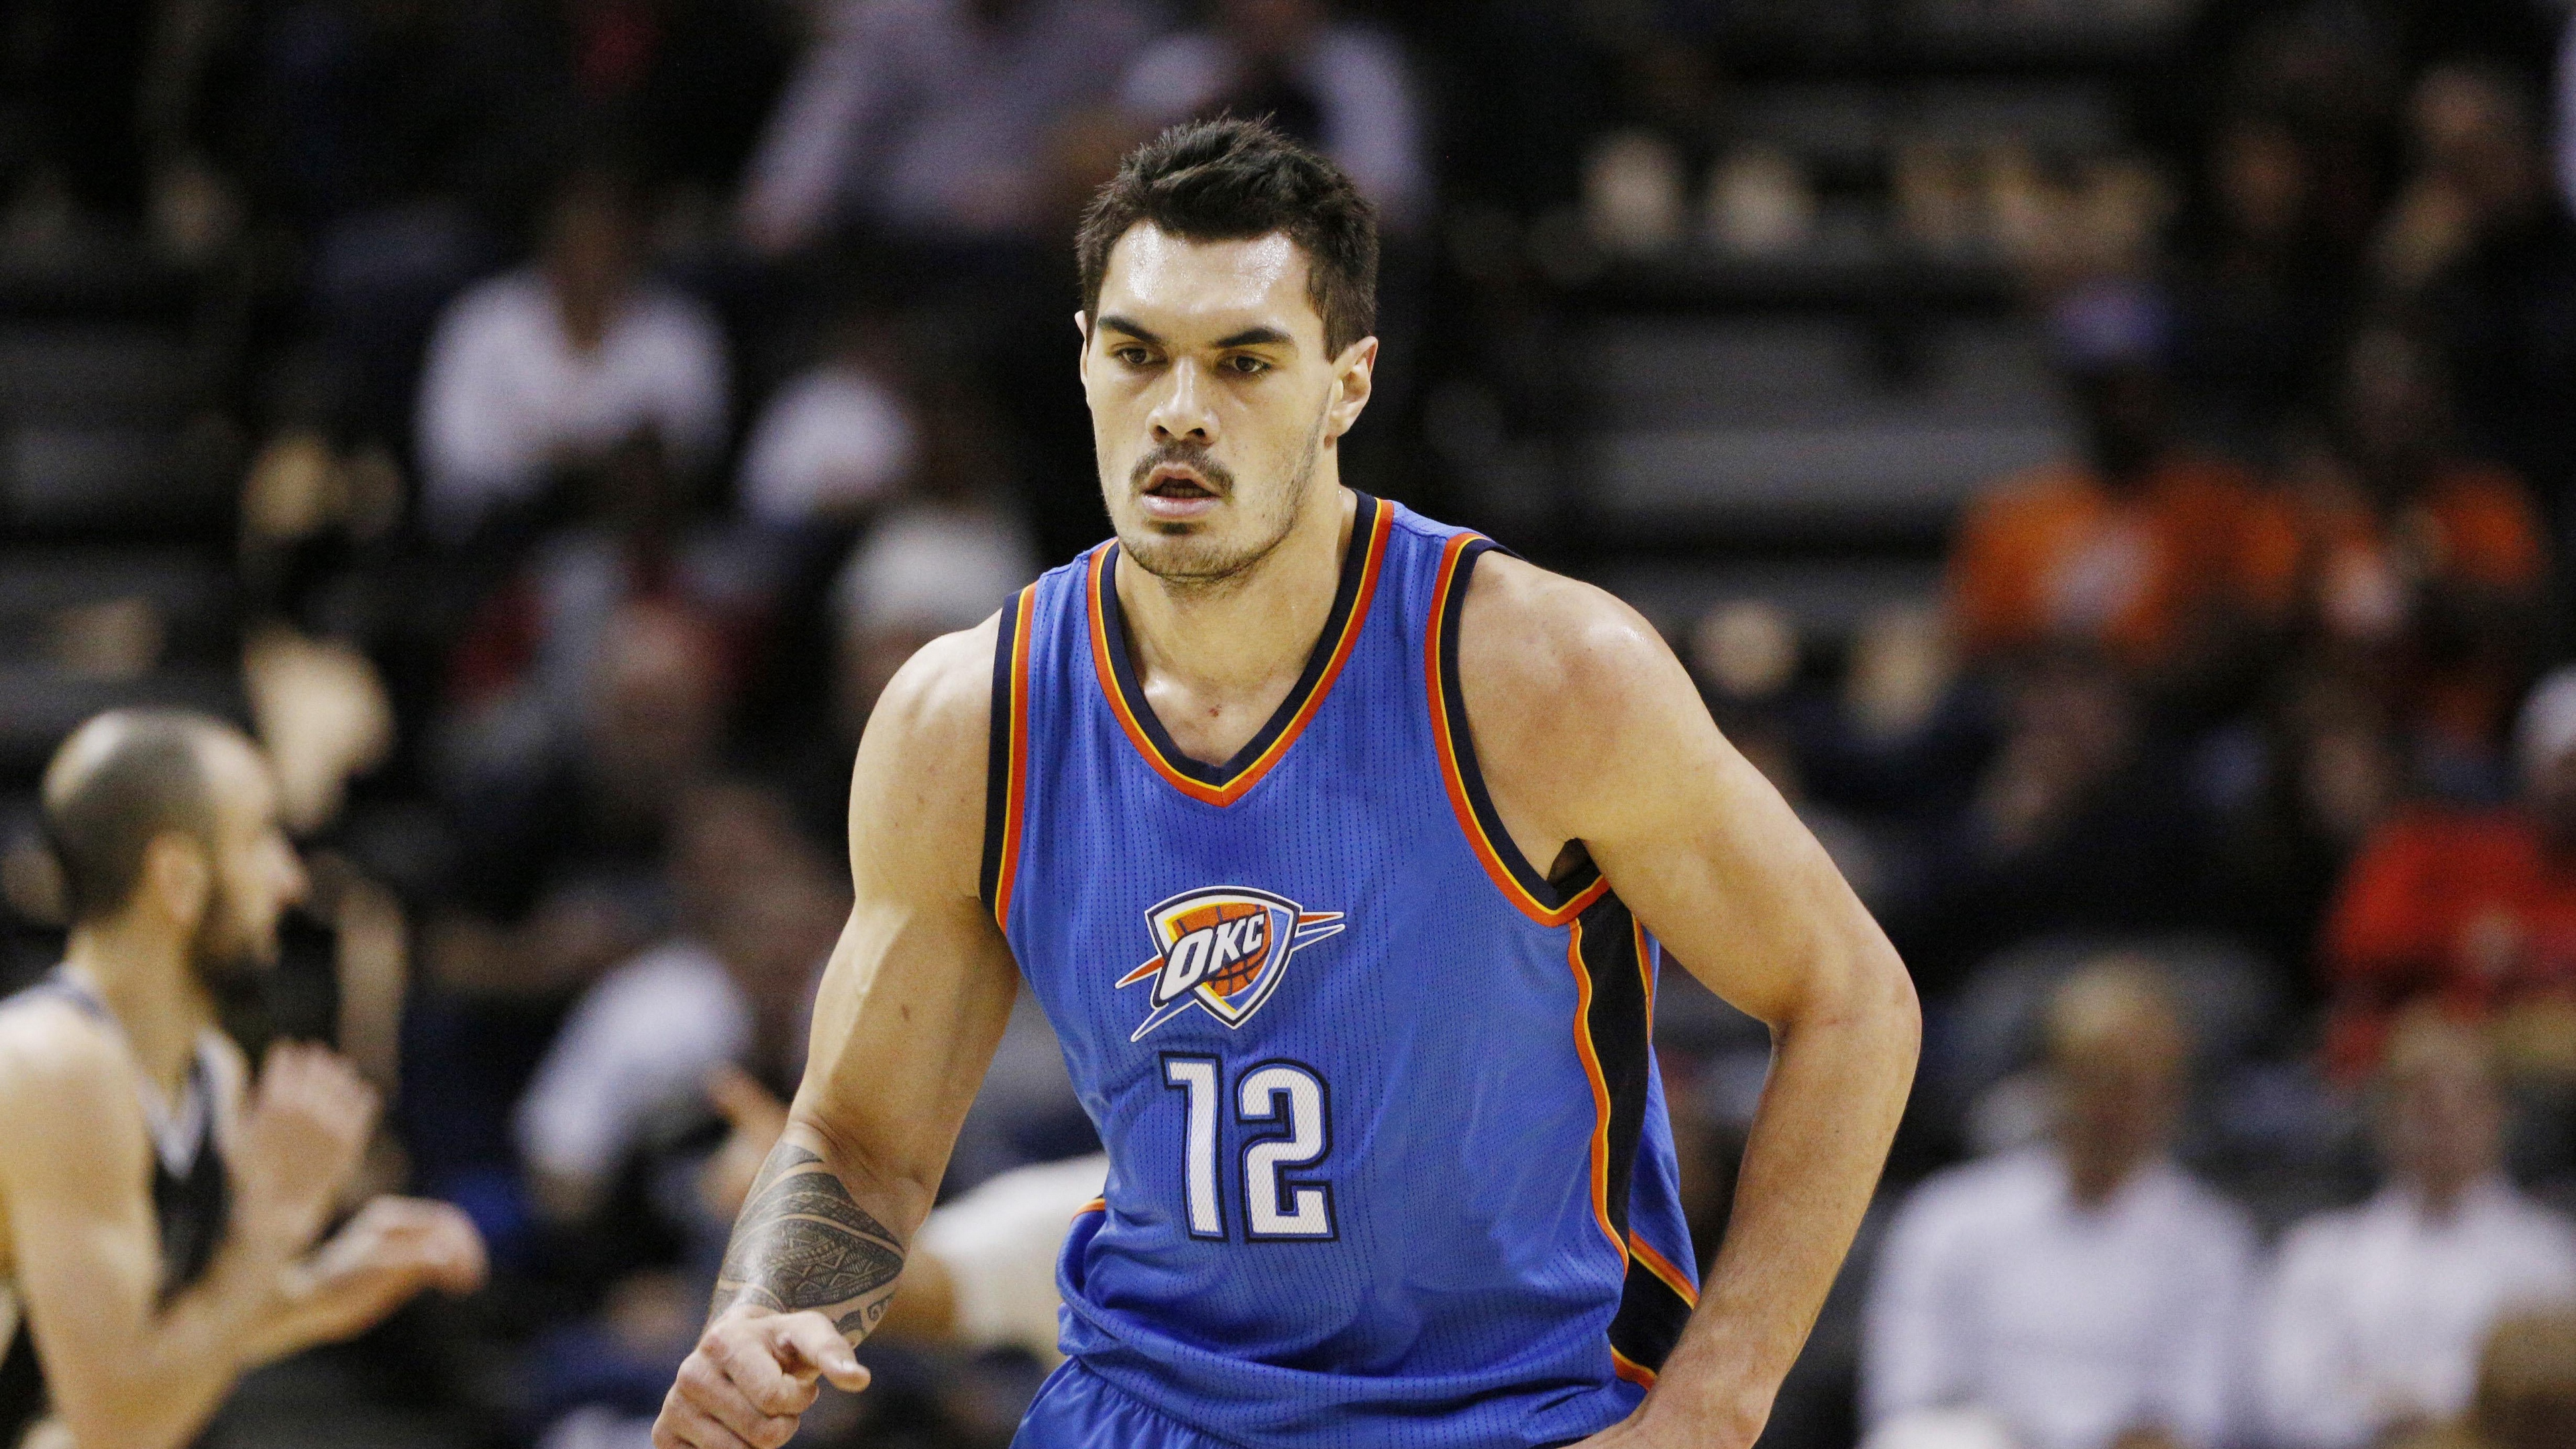 steven adams basketball oklahoma city thunder 4k 1540060870 - steven adams, basketball, oklahoma city thunder 4k - steven adams, oklahoma city thunder, Basketball